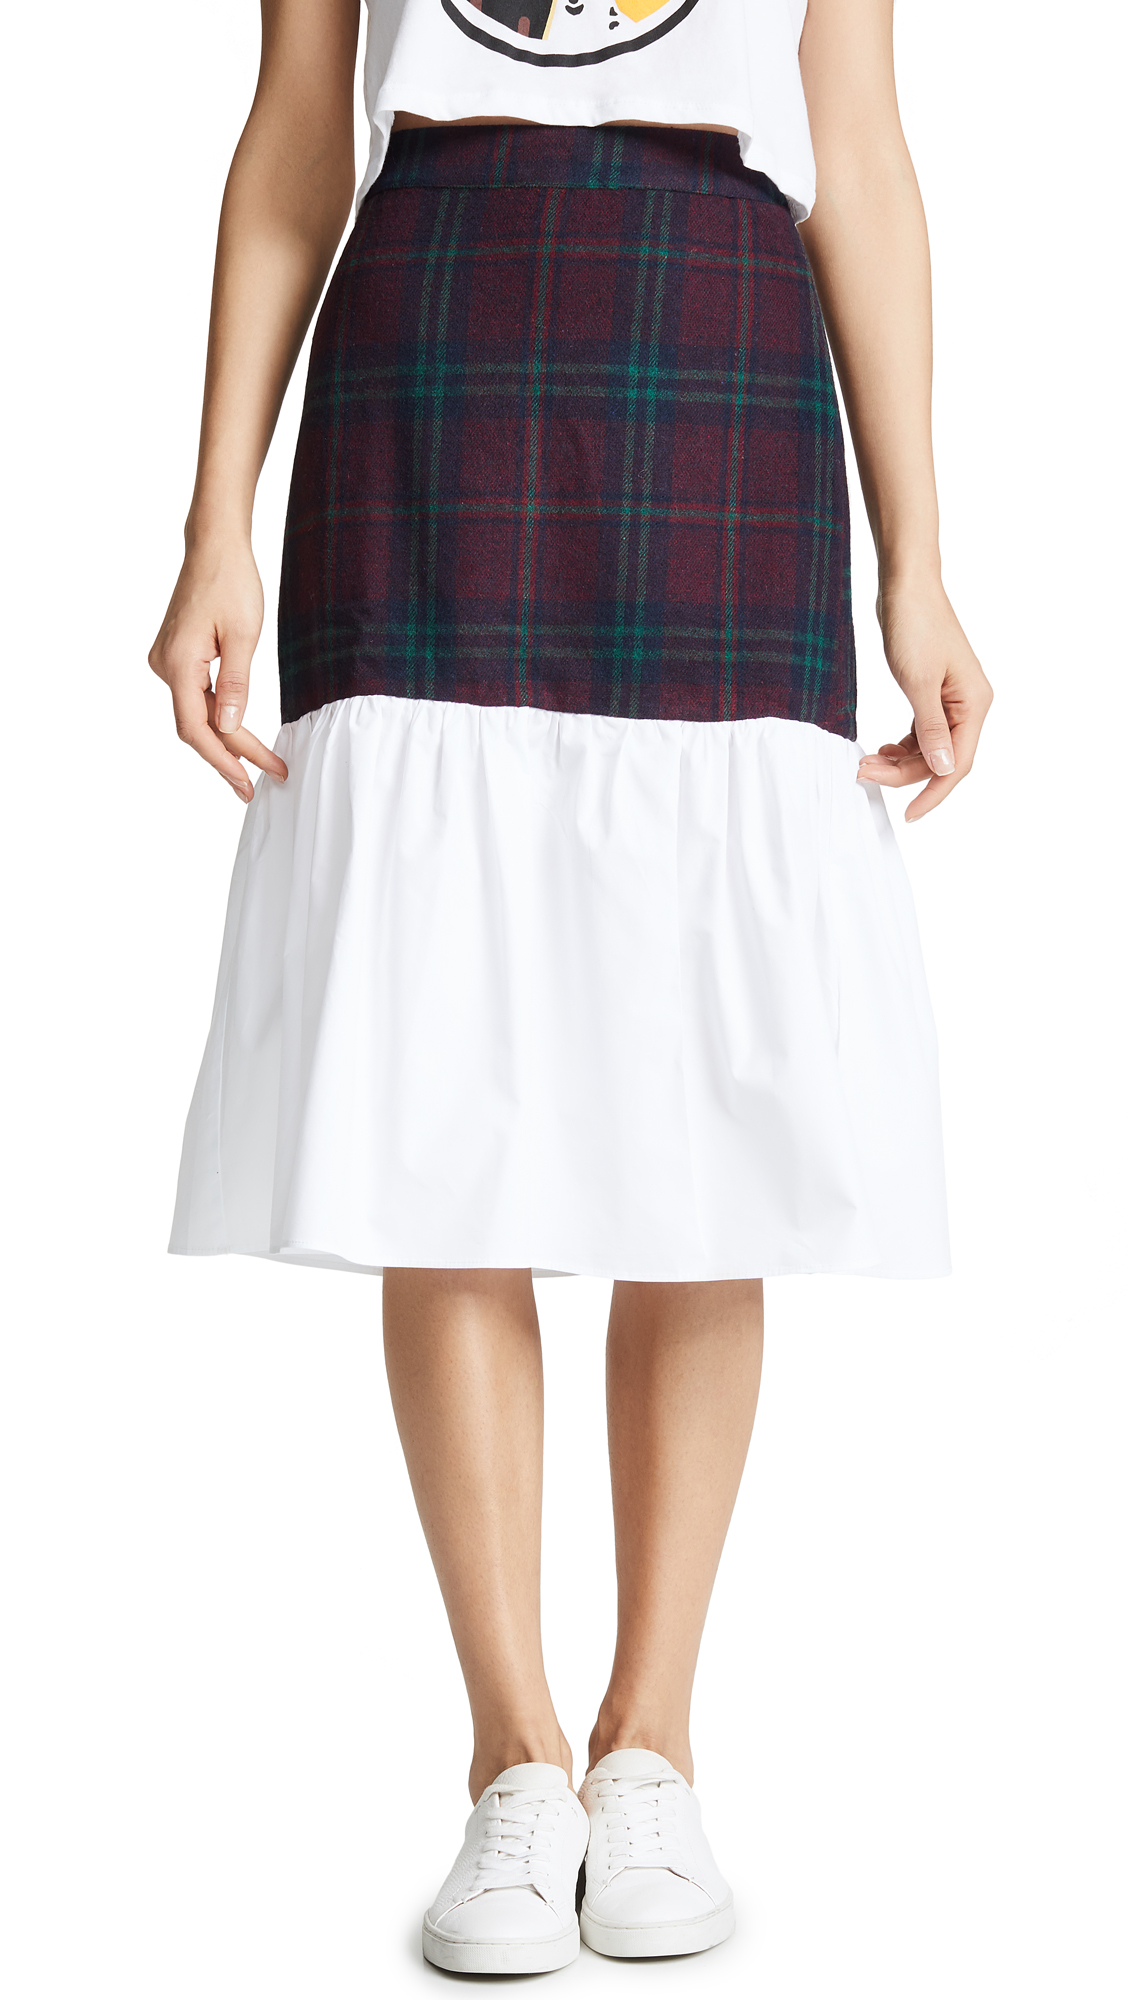 ENGLISH FACTORY Tartan Combo Skirt in Carbon Blue